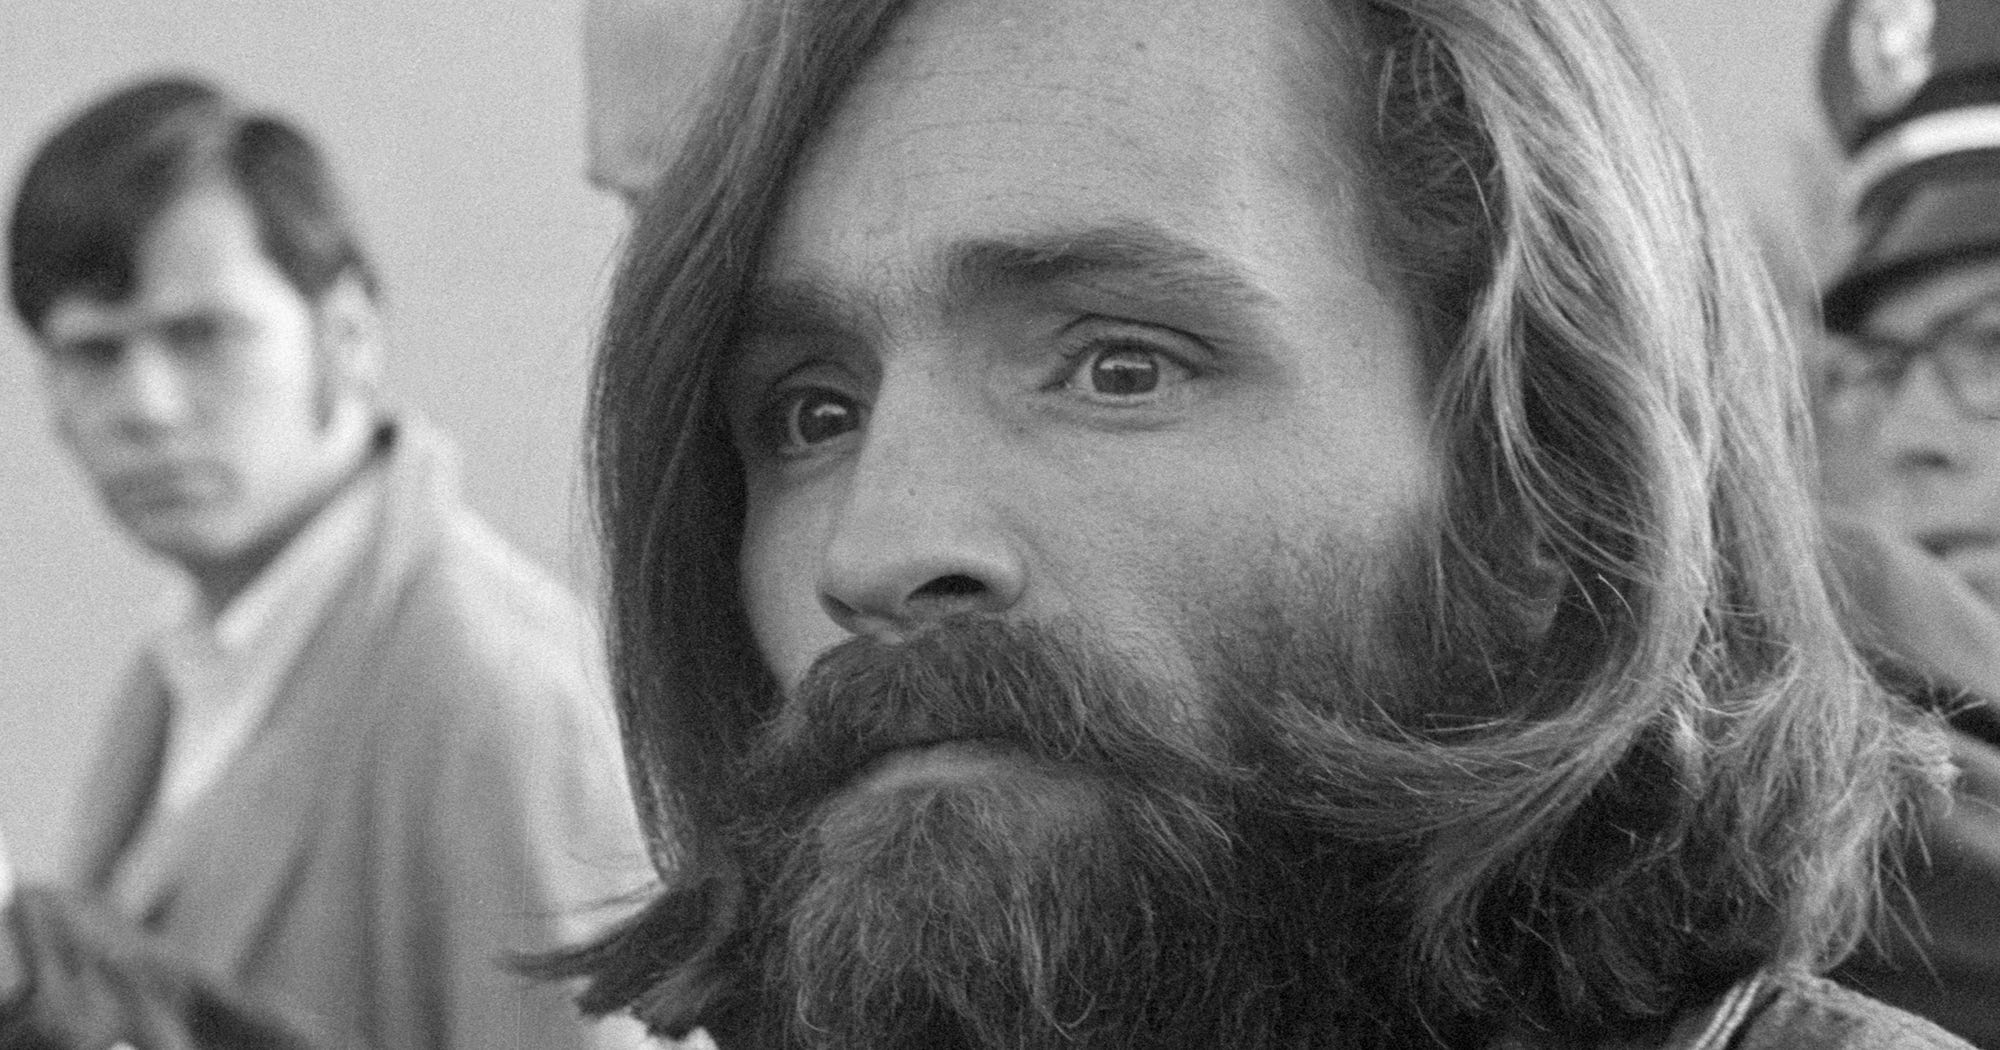 Manson Family Leader Charles Manson Dead At 83